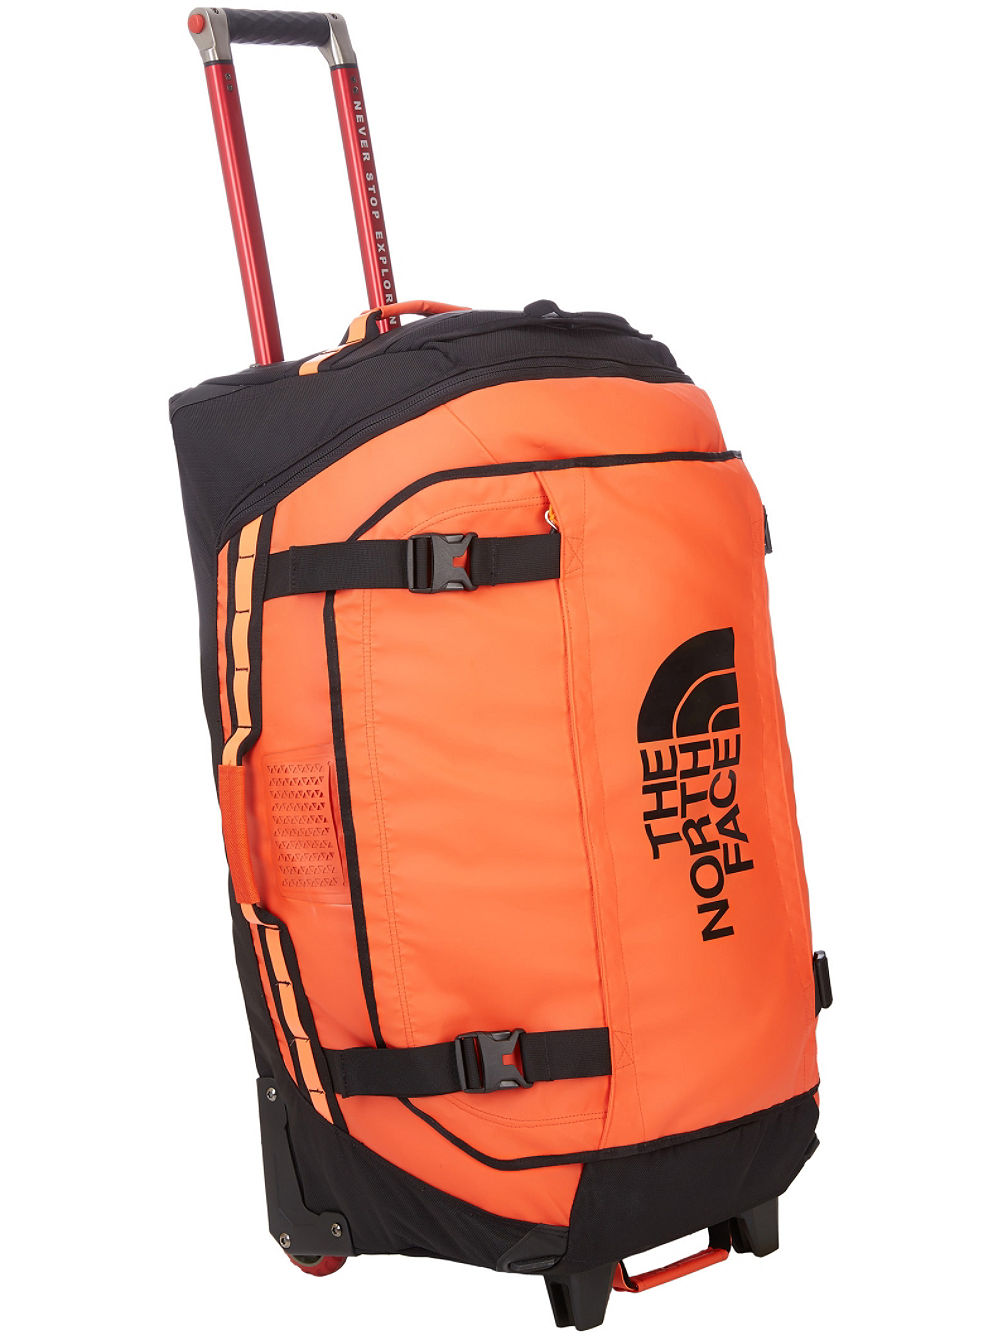 b526de7d5 Buy THE NORTH FACE Rolling Thunder - 30